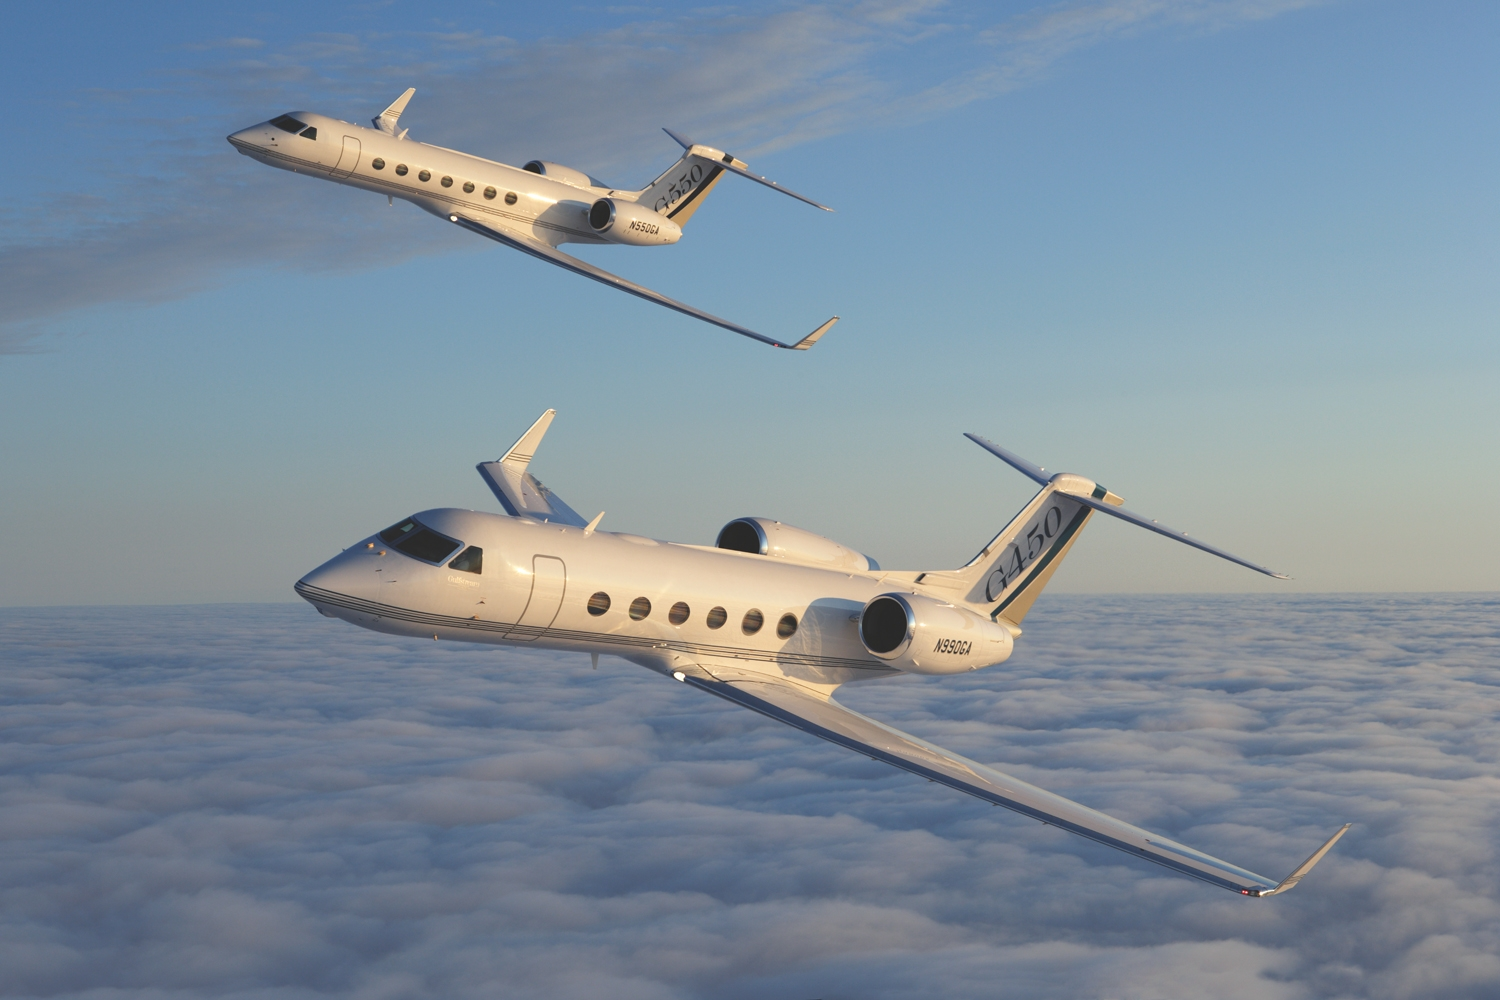 Gulfstream is exhibiting its G650, G280 and G450 models at JetExpo 2013 in Russia